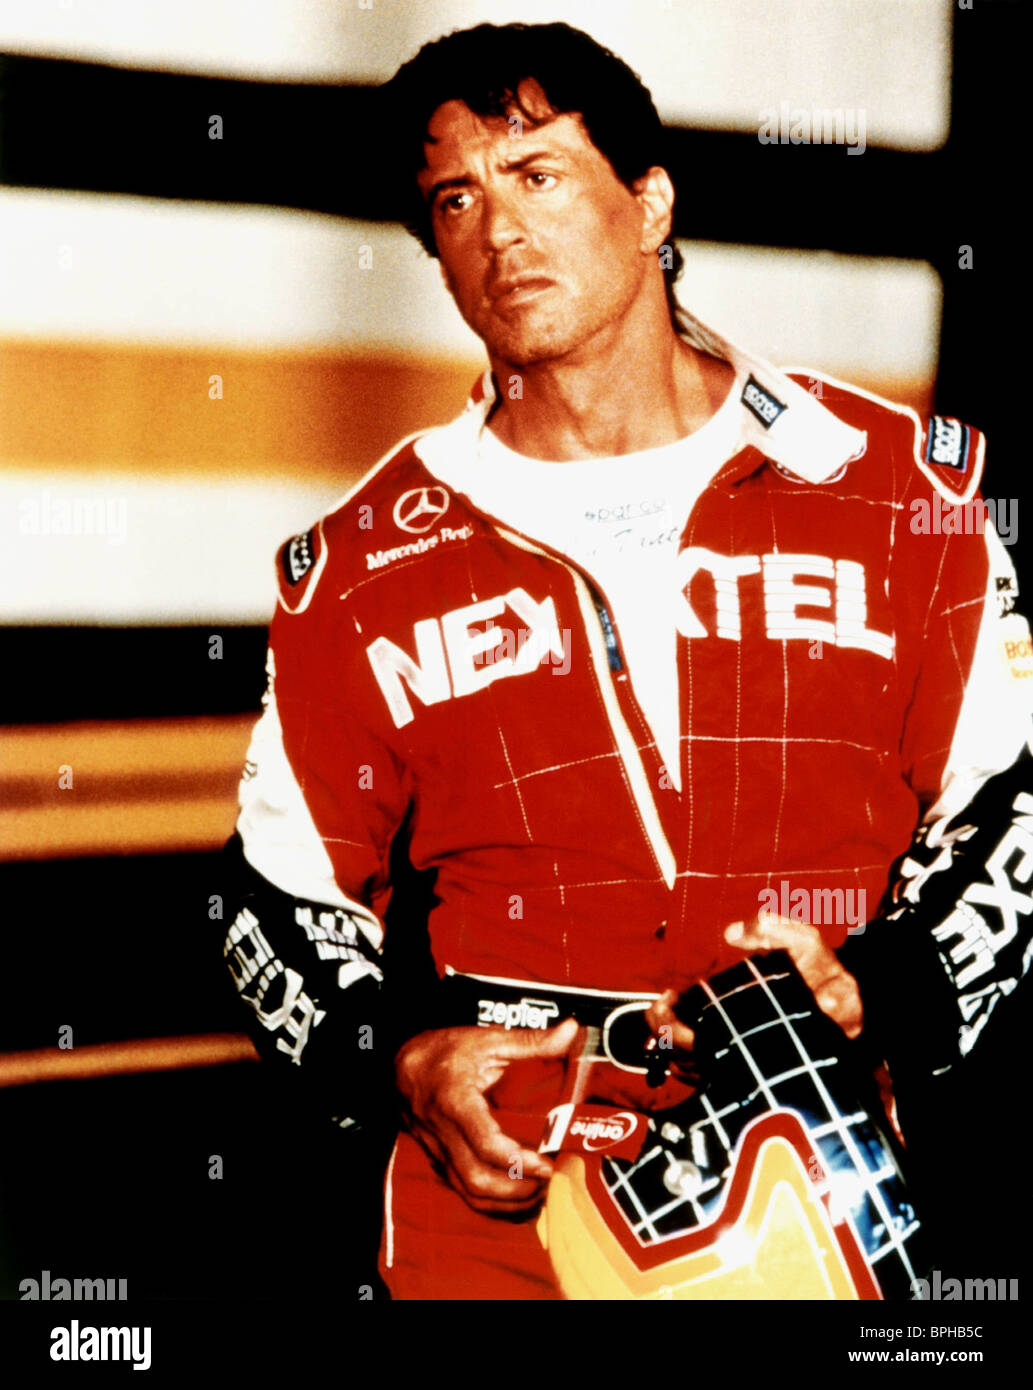 SYLVESTER STALLONE DRIVEN (2001) - Stock Image